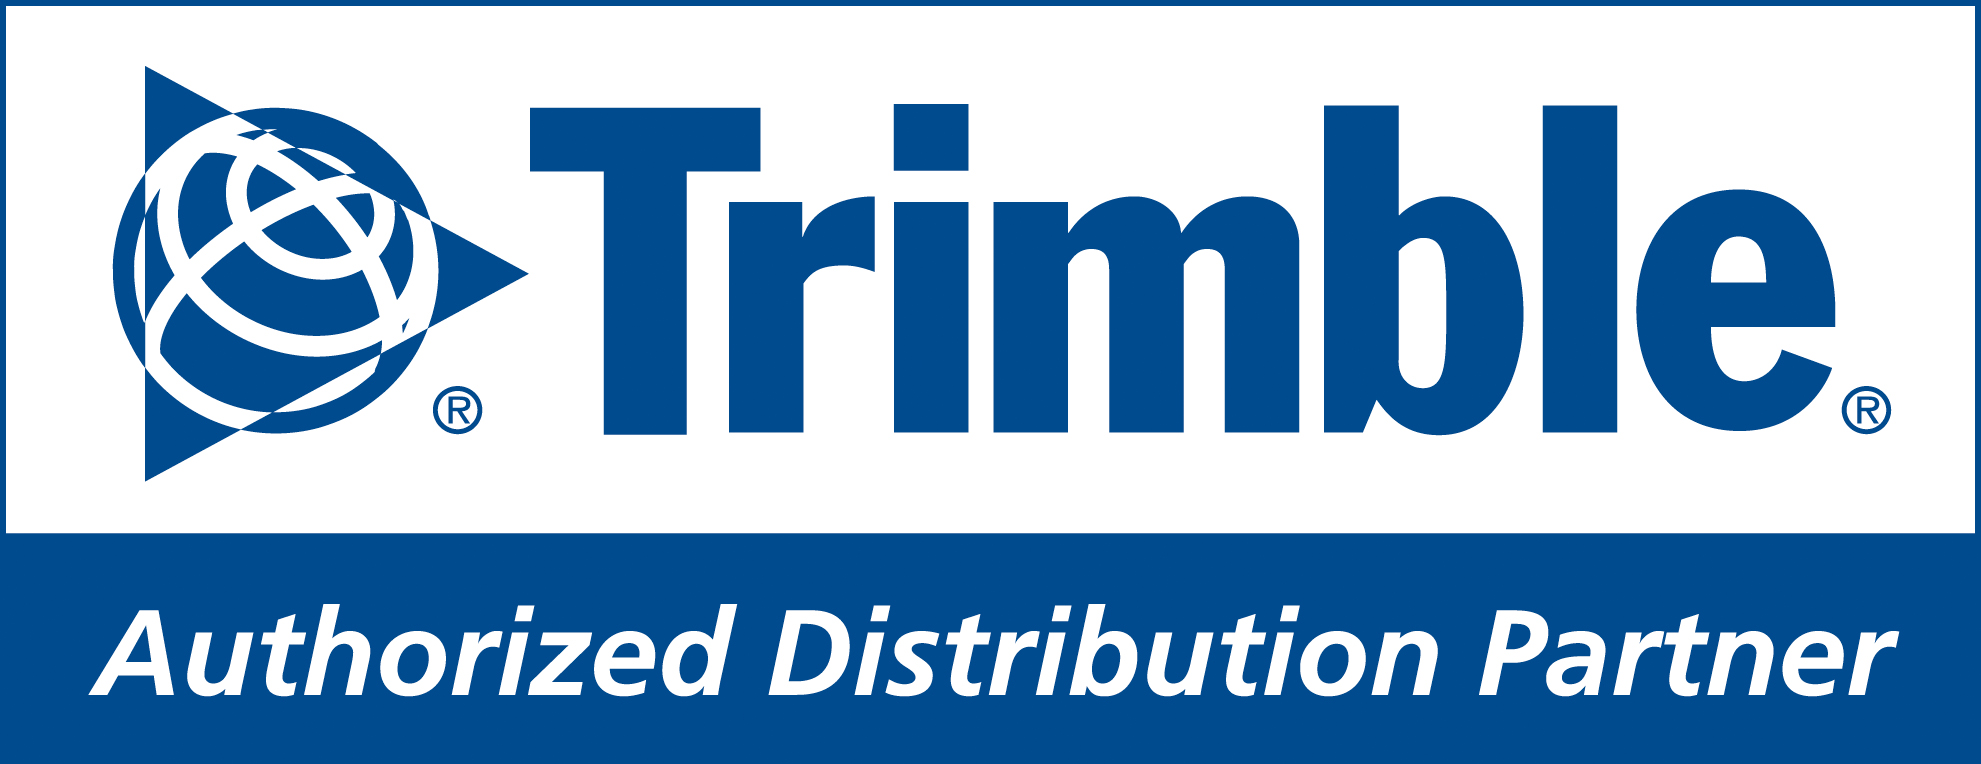 trimble-authorized-distribution-partner-1-.jpg